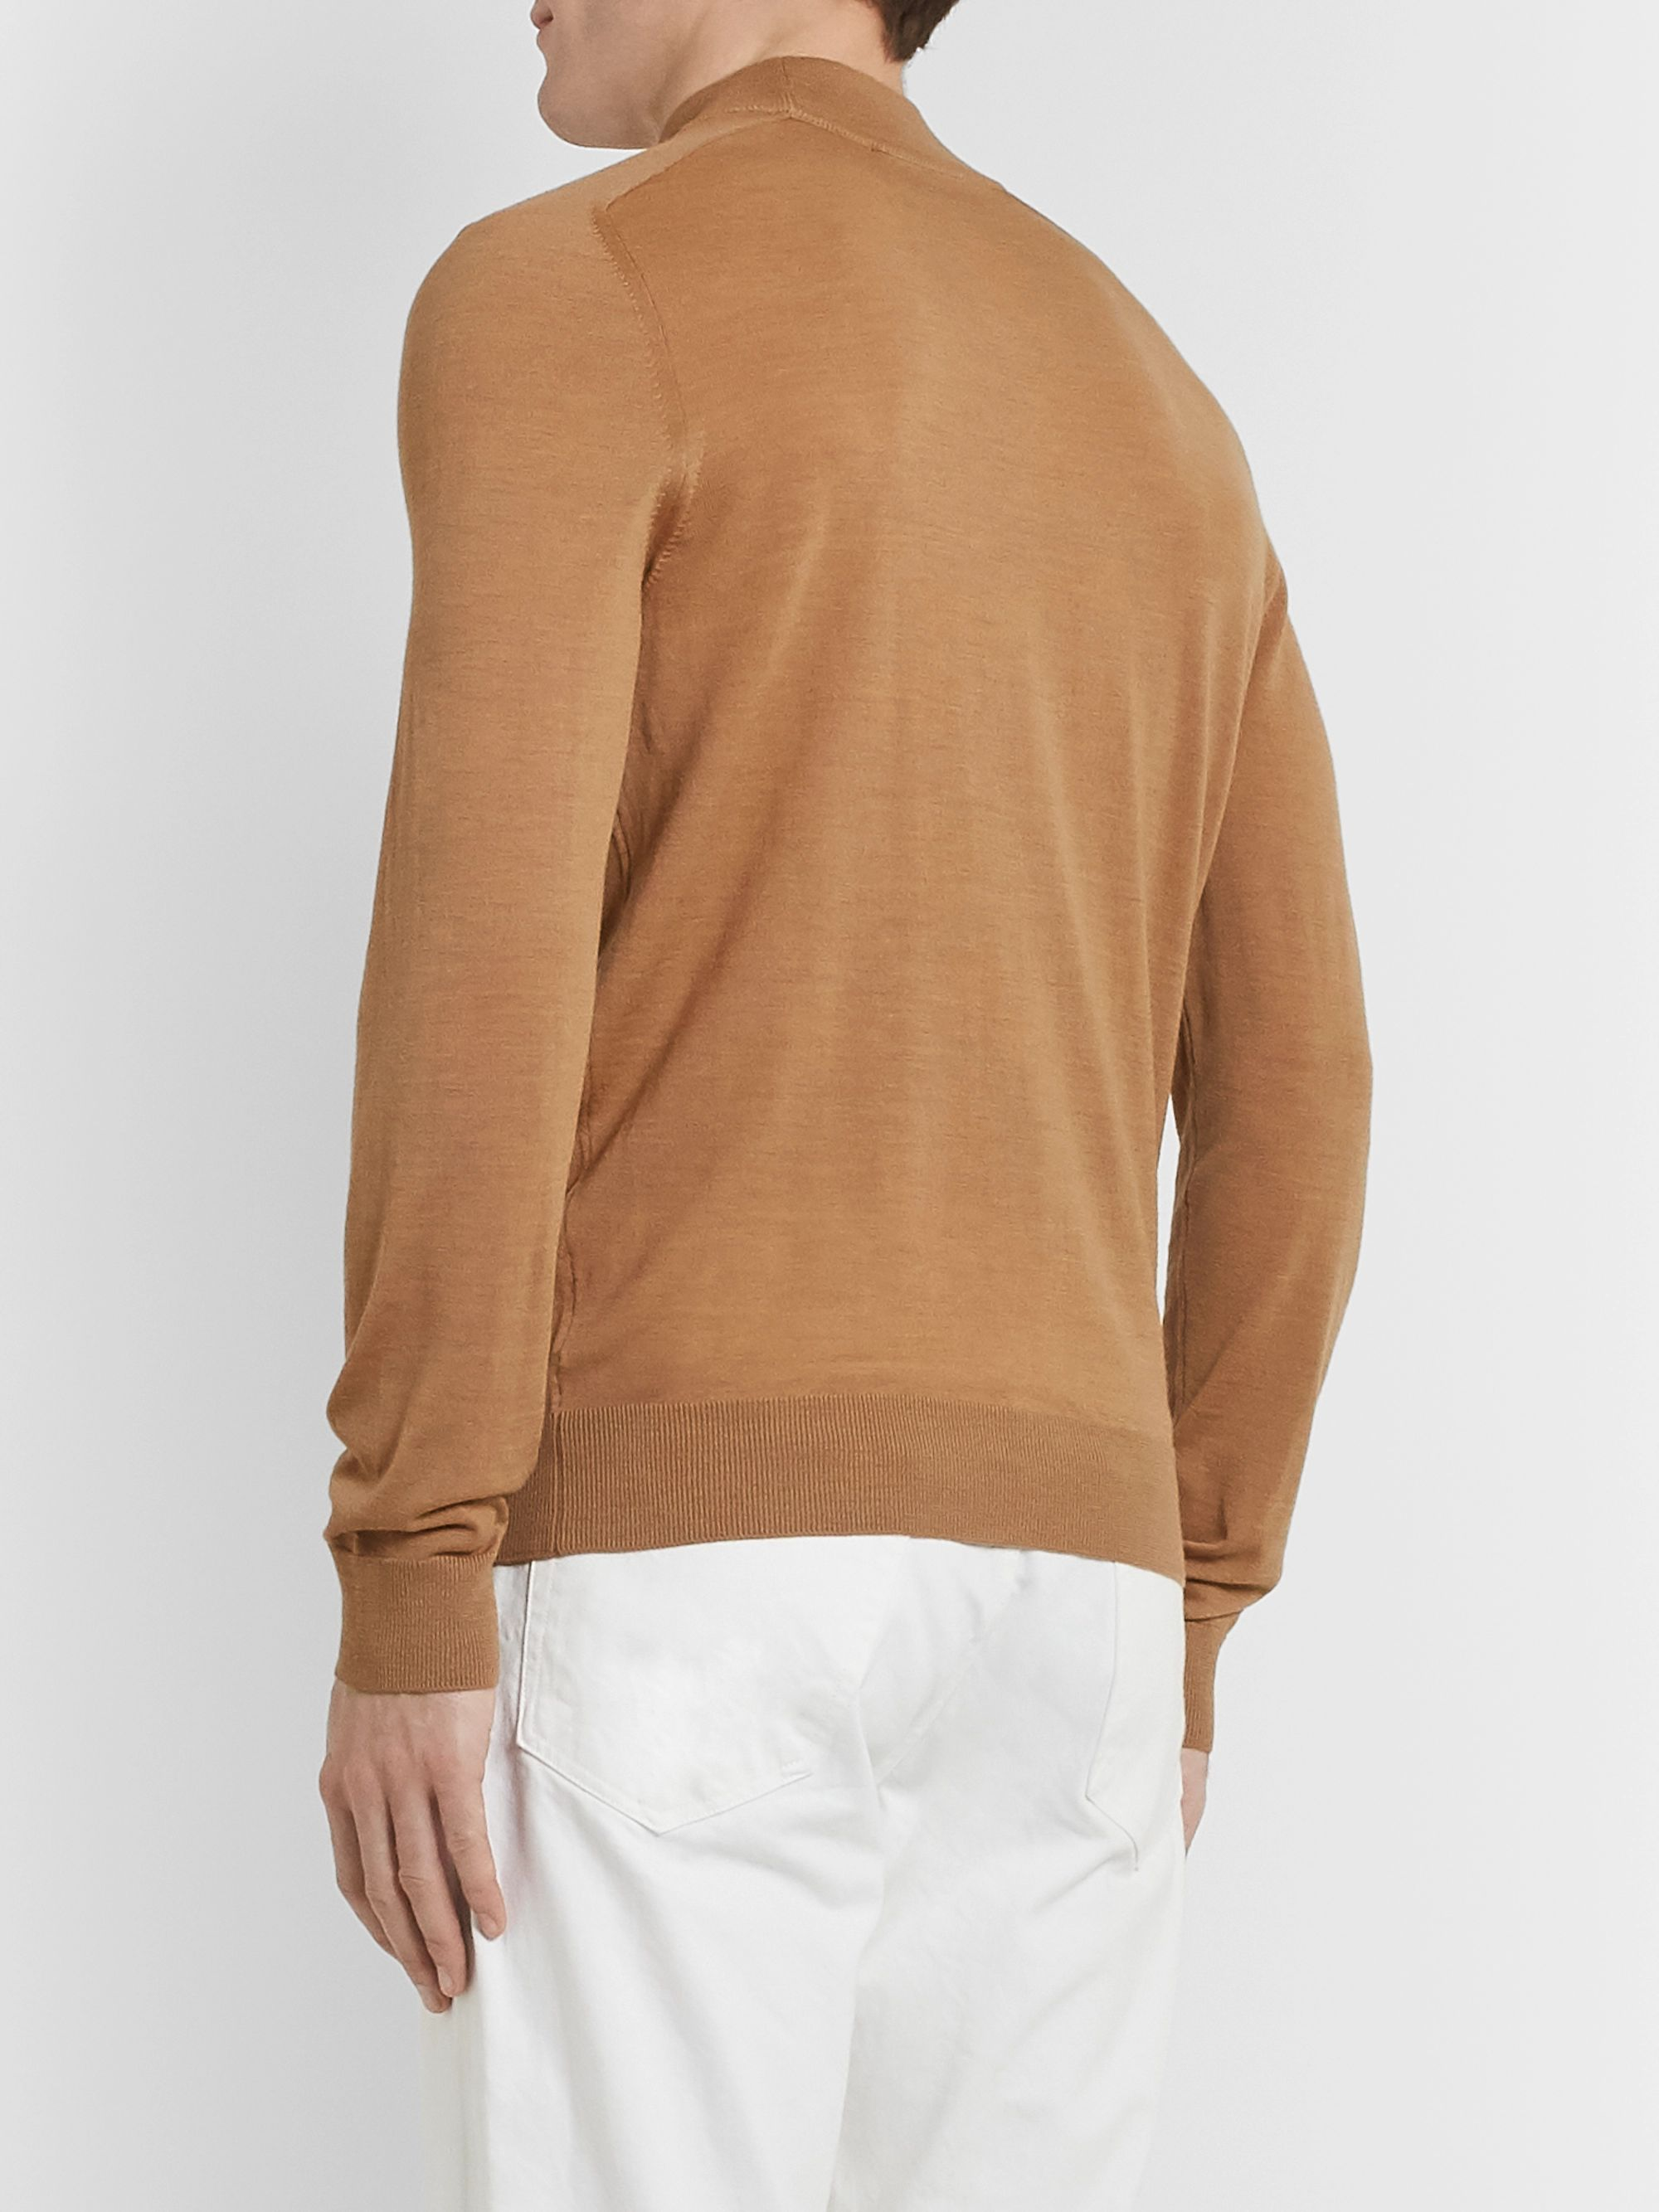 Mr P. Mélange Merino Wool Rollneck Sweater